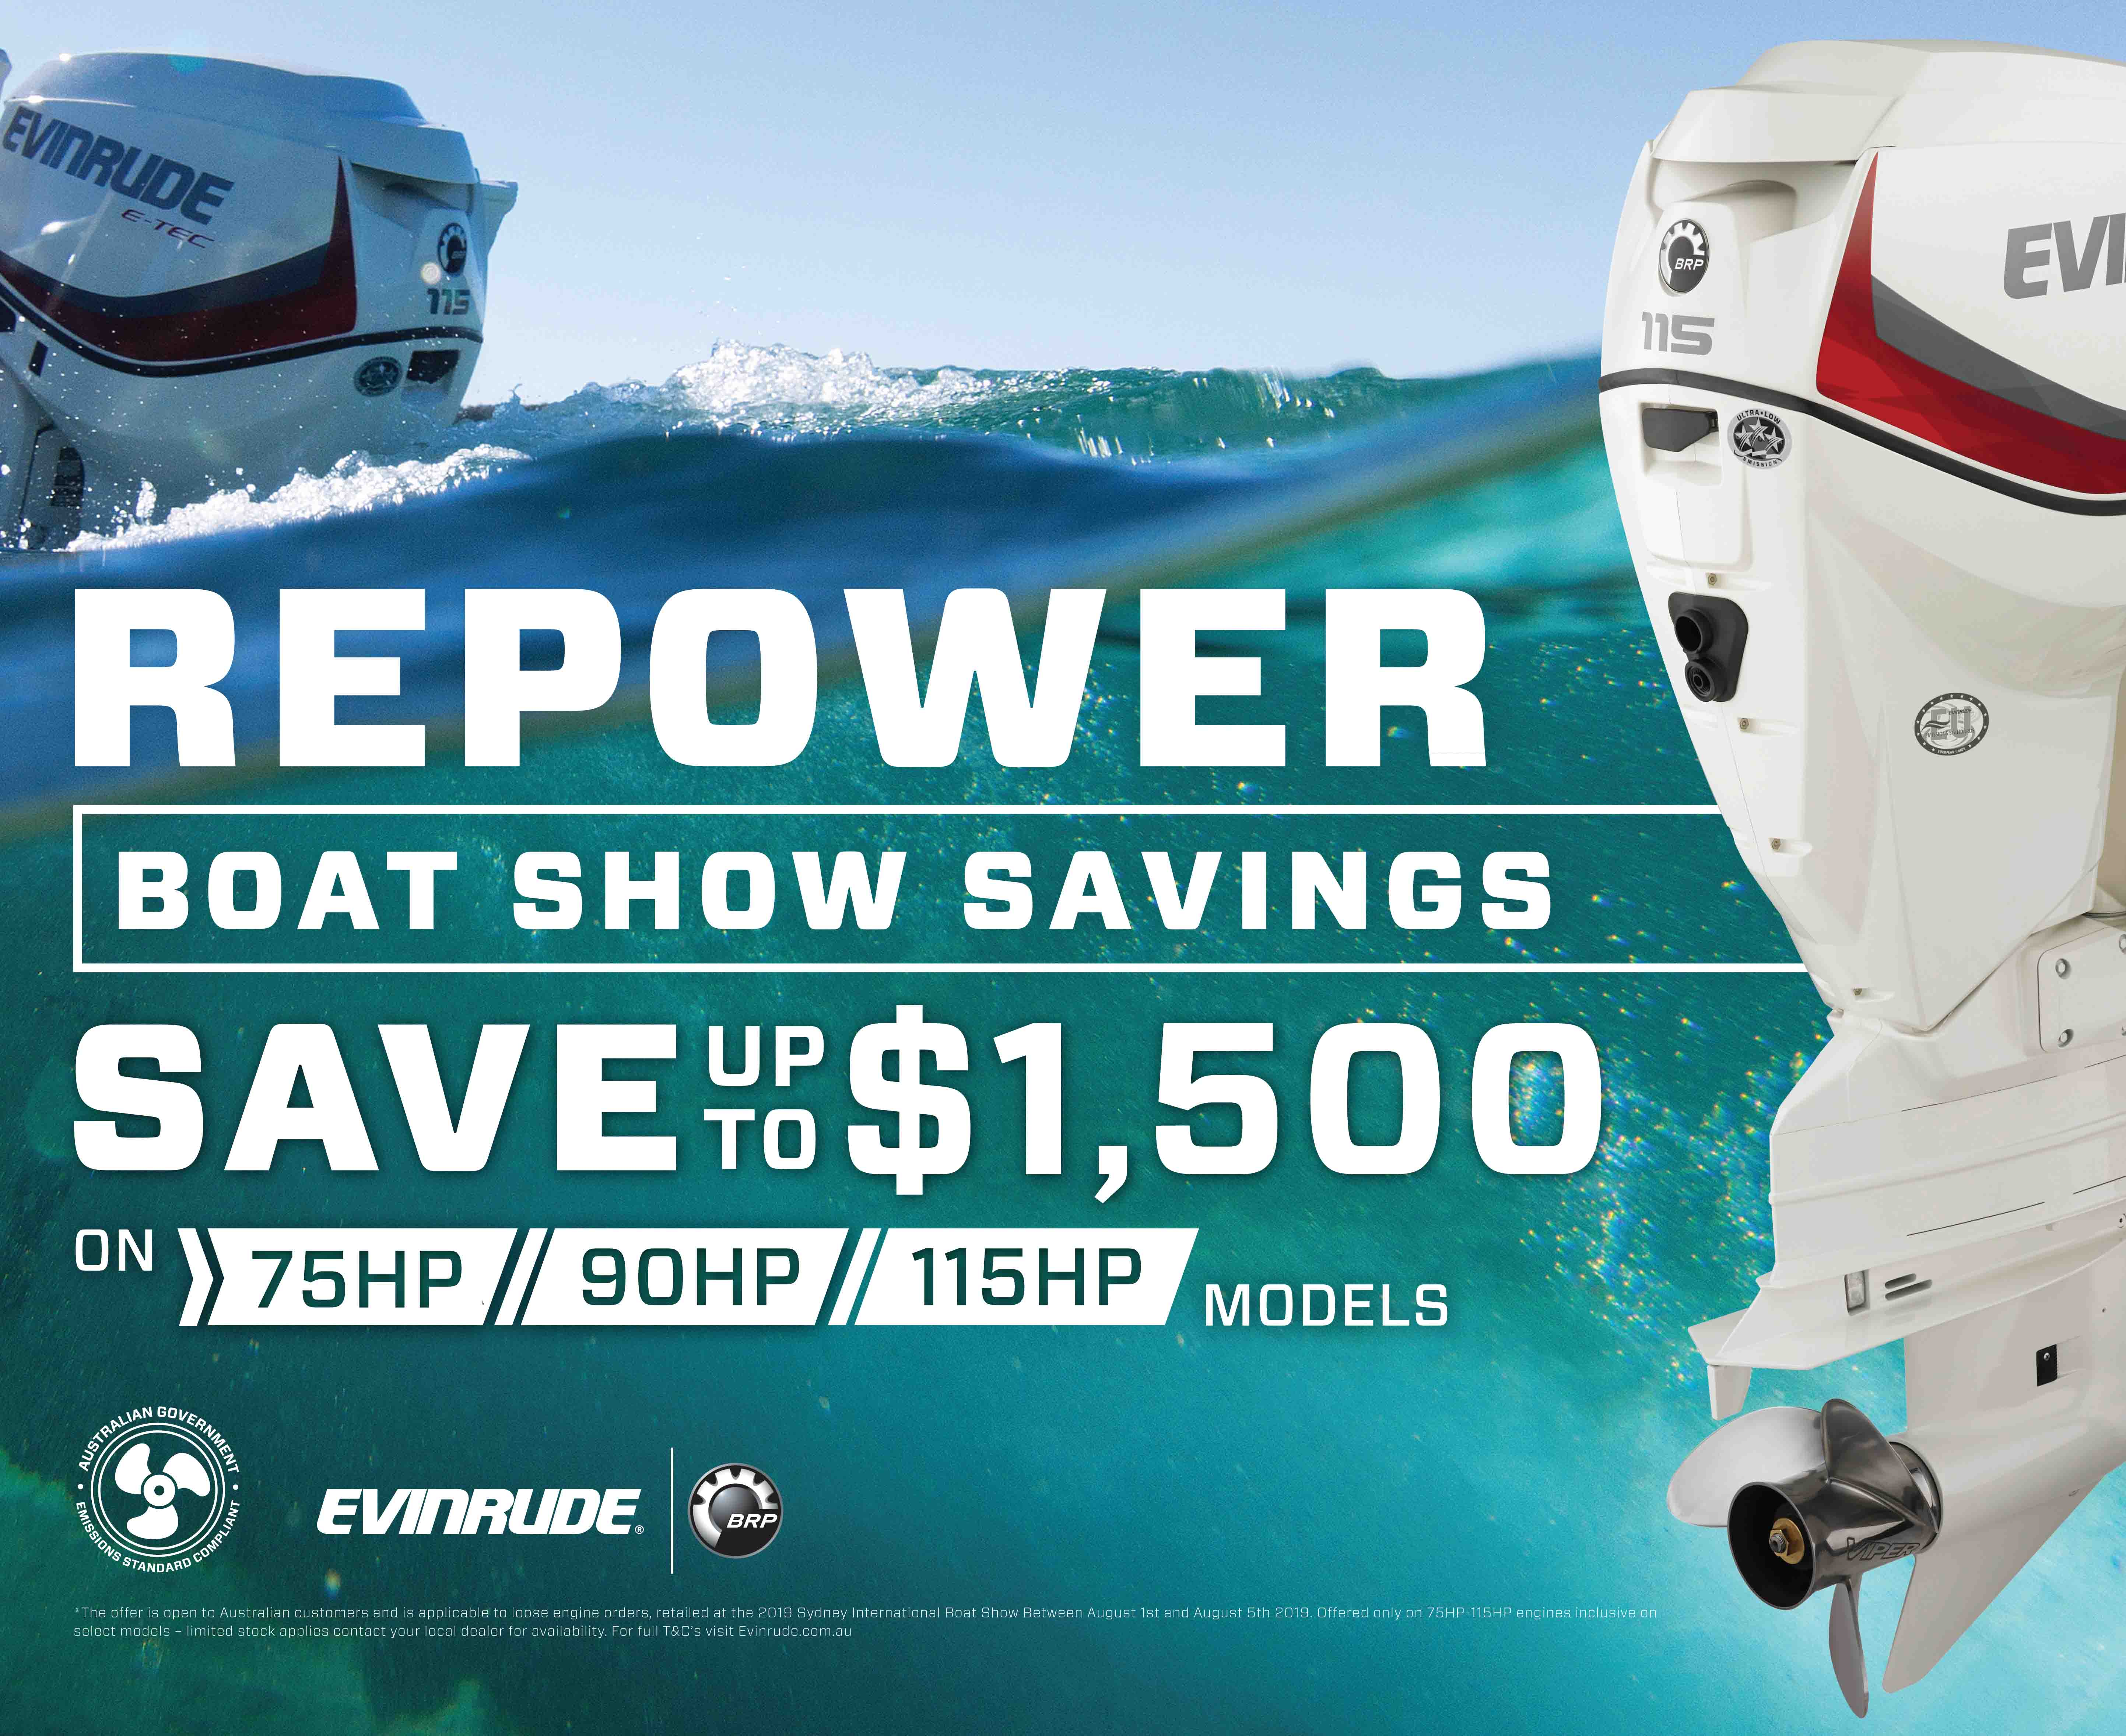 TELW_Sydney-Boatshow-Evinrude-Promotion-Floor-sticker%20(1)